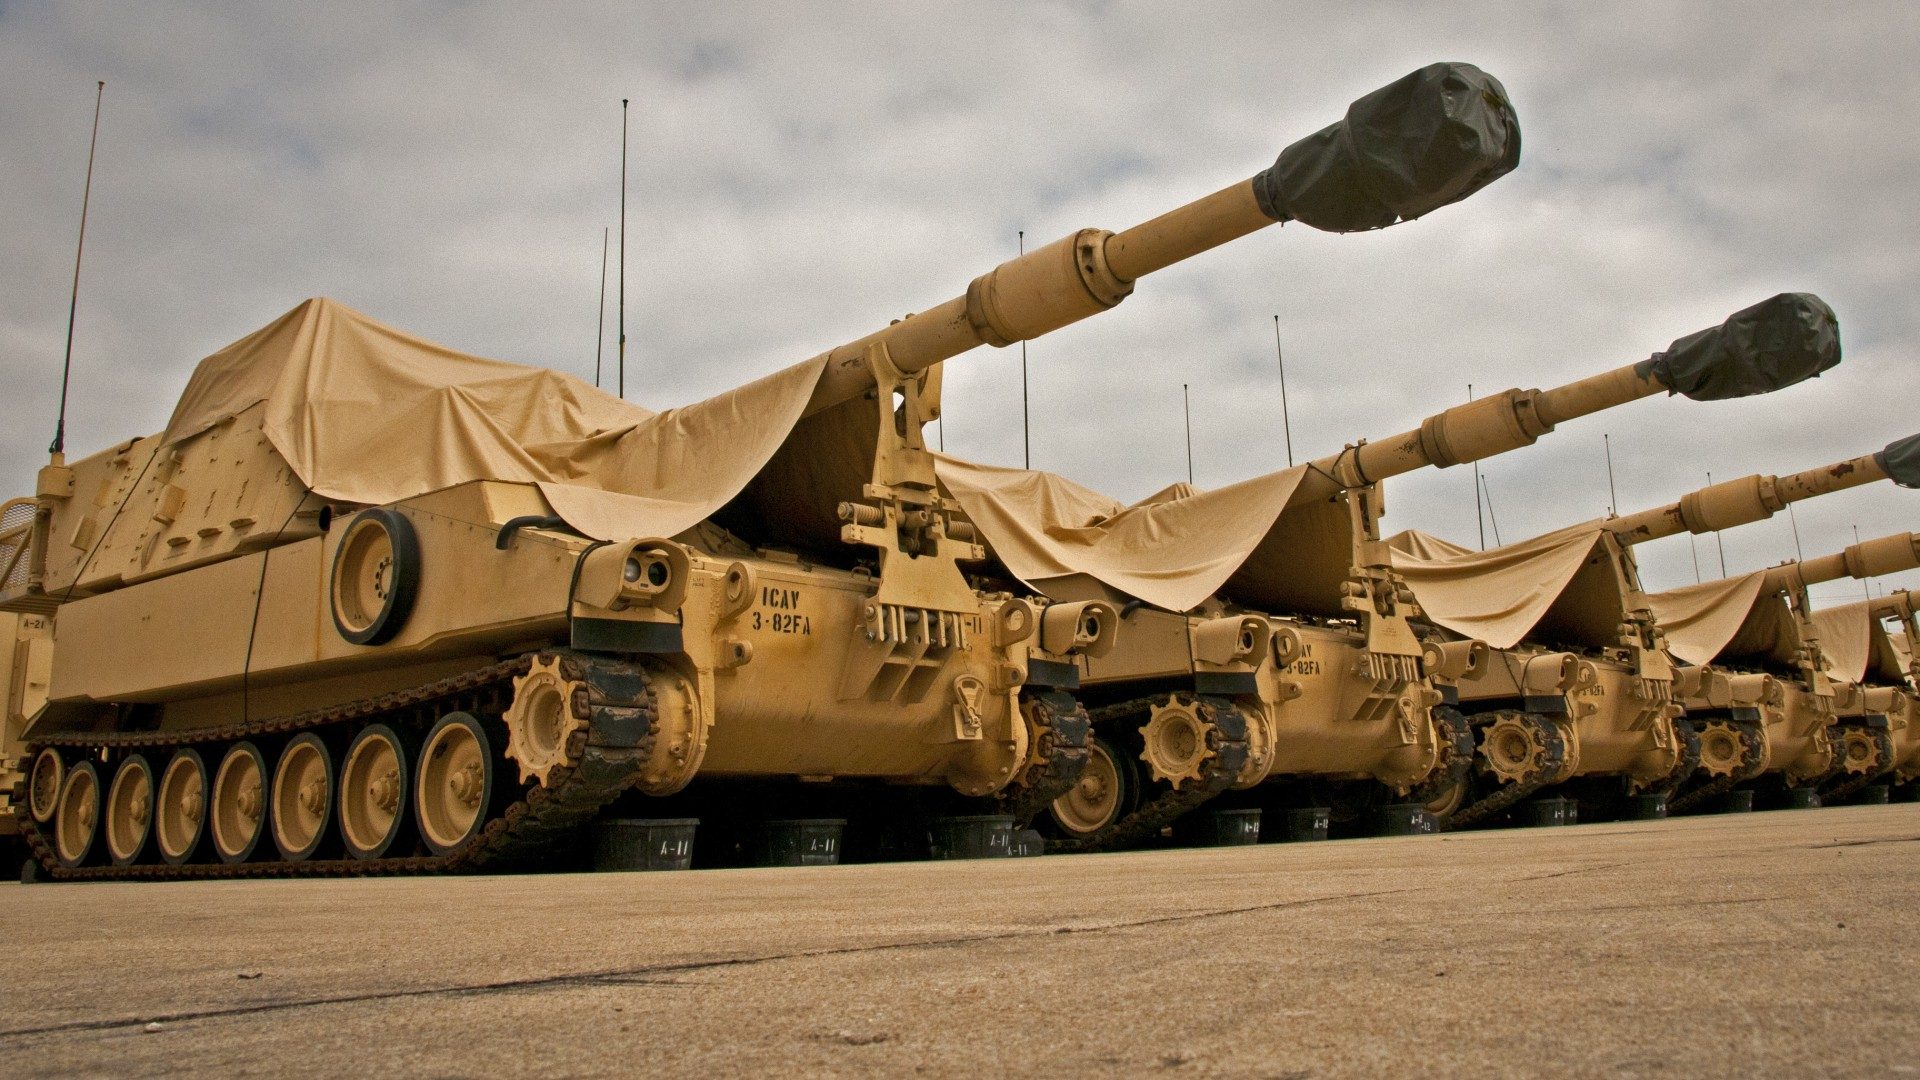 Wallpaper M109A6, howitzer, artillery, Paladin, U.S. Army, vehicle, Military #1674